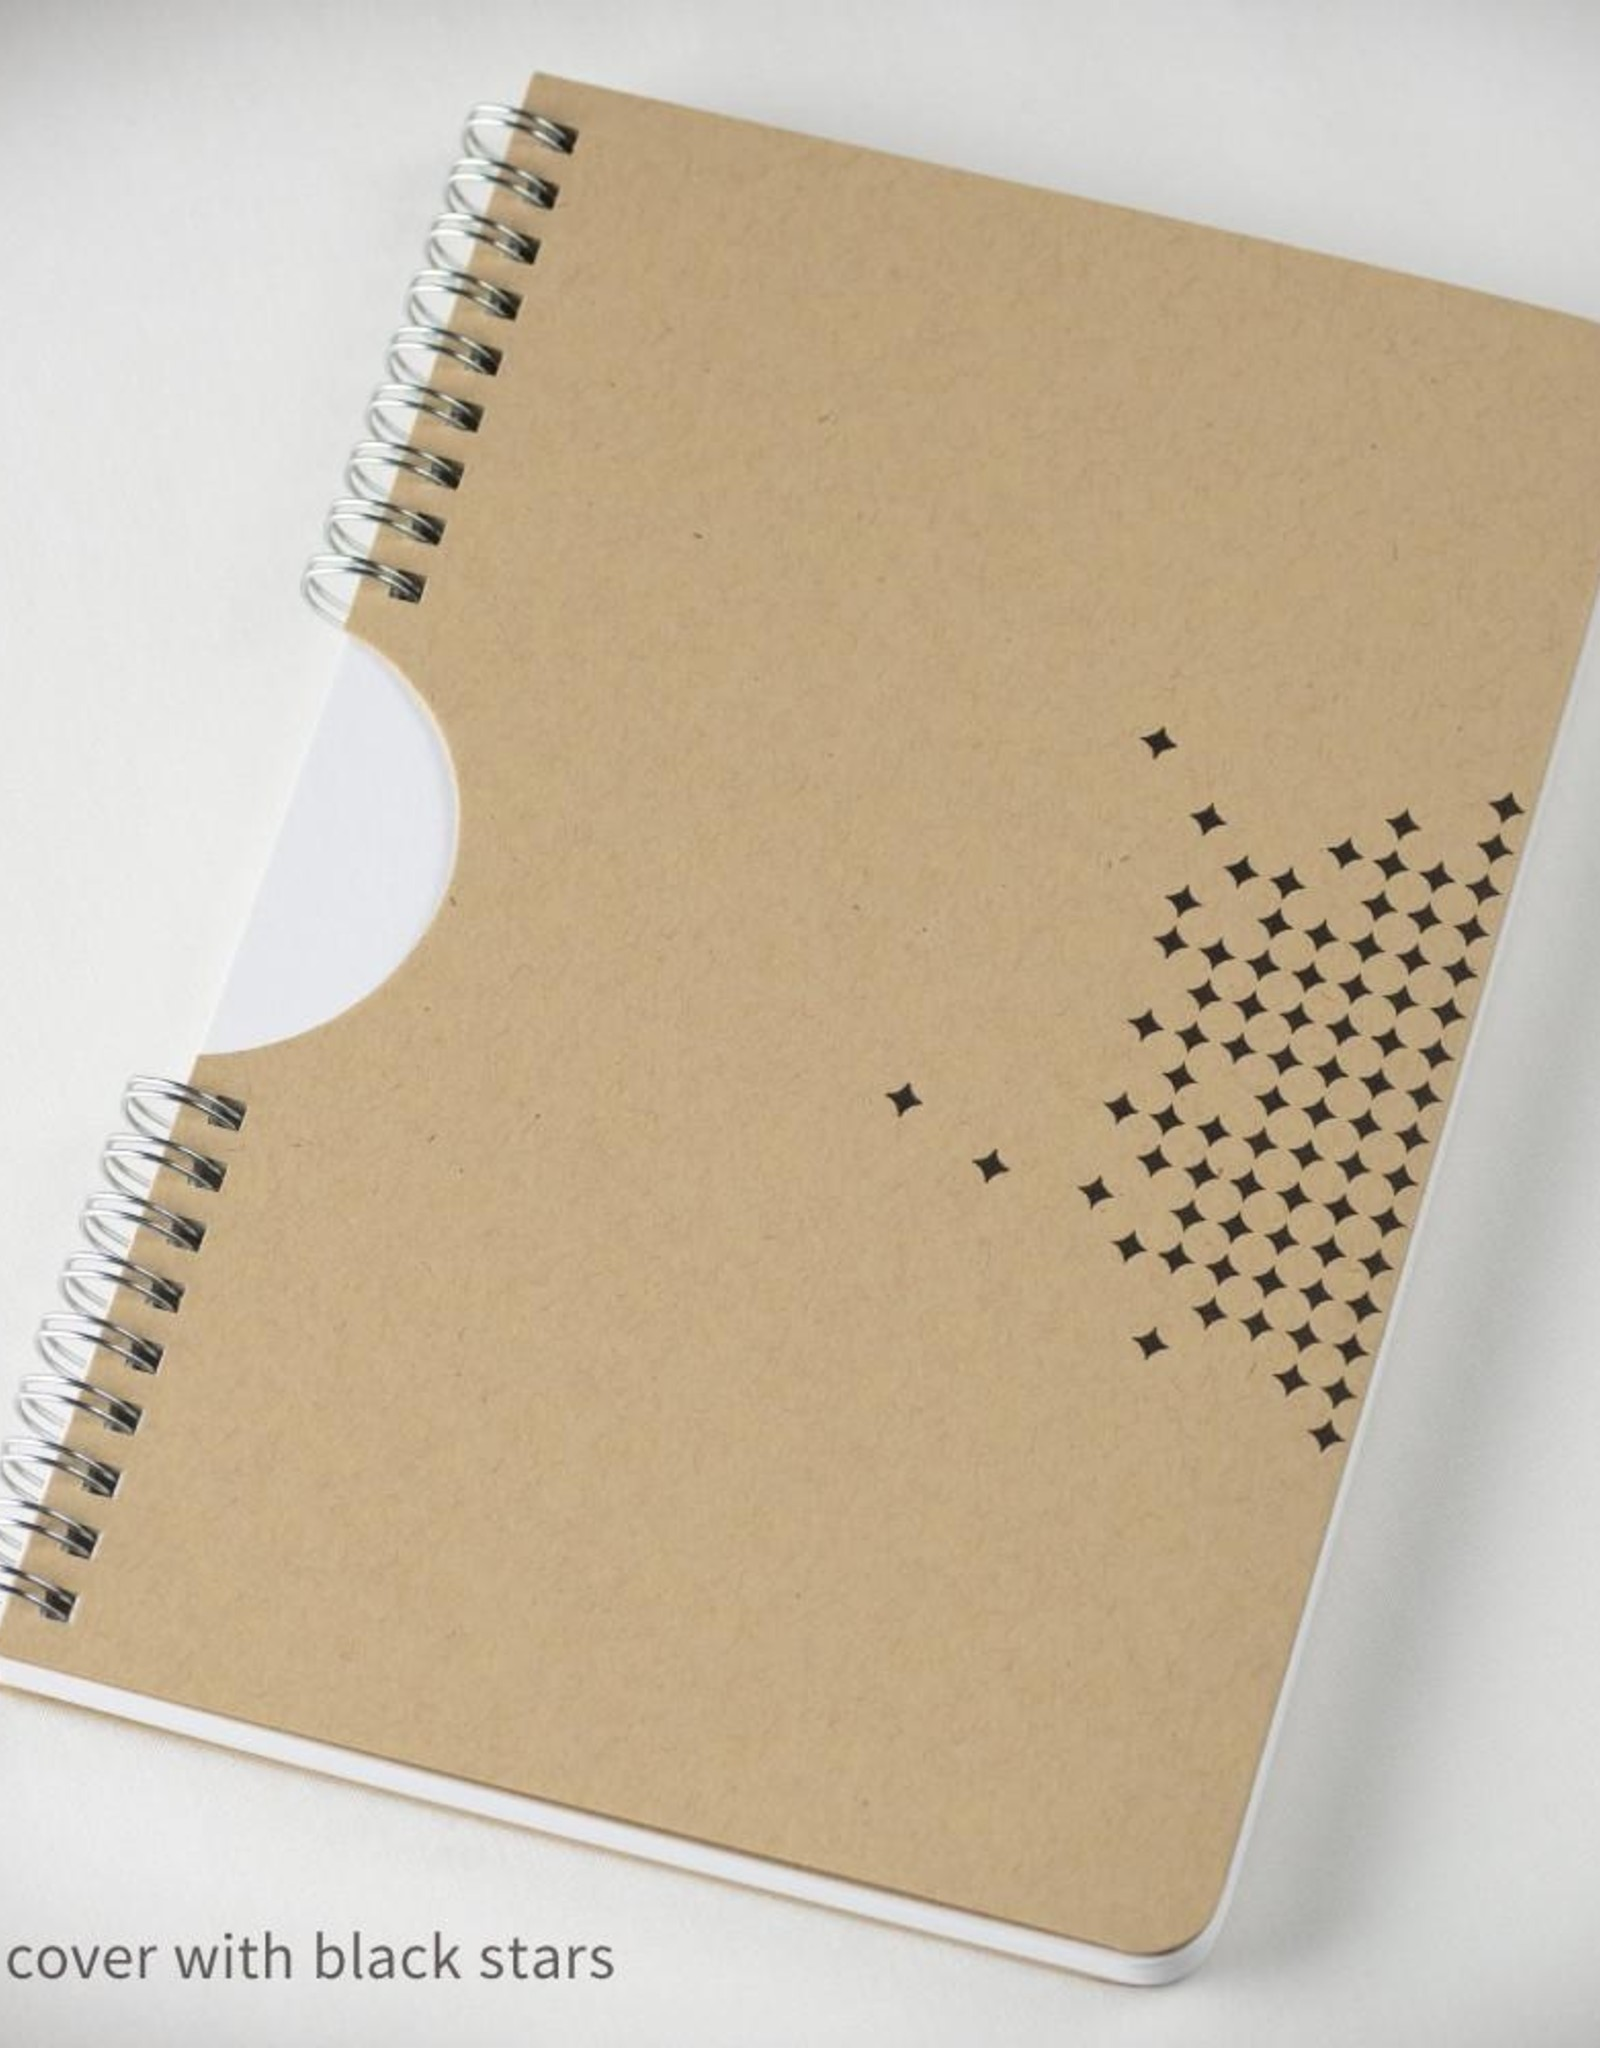 Inkello Star Spiral Notebook with Kraft Cover and Black Ink